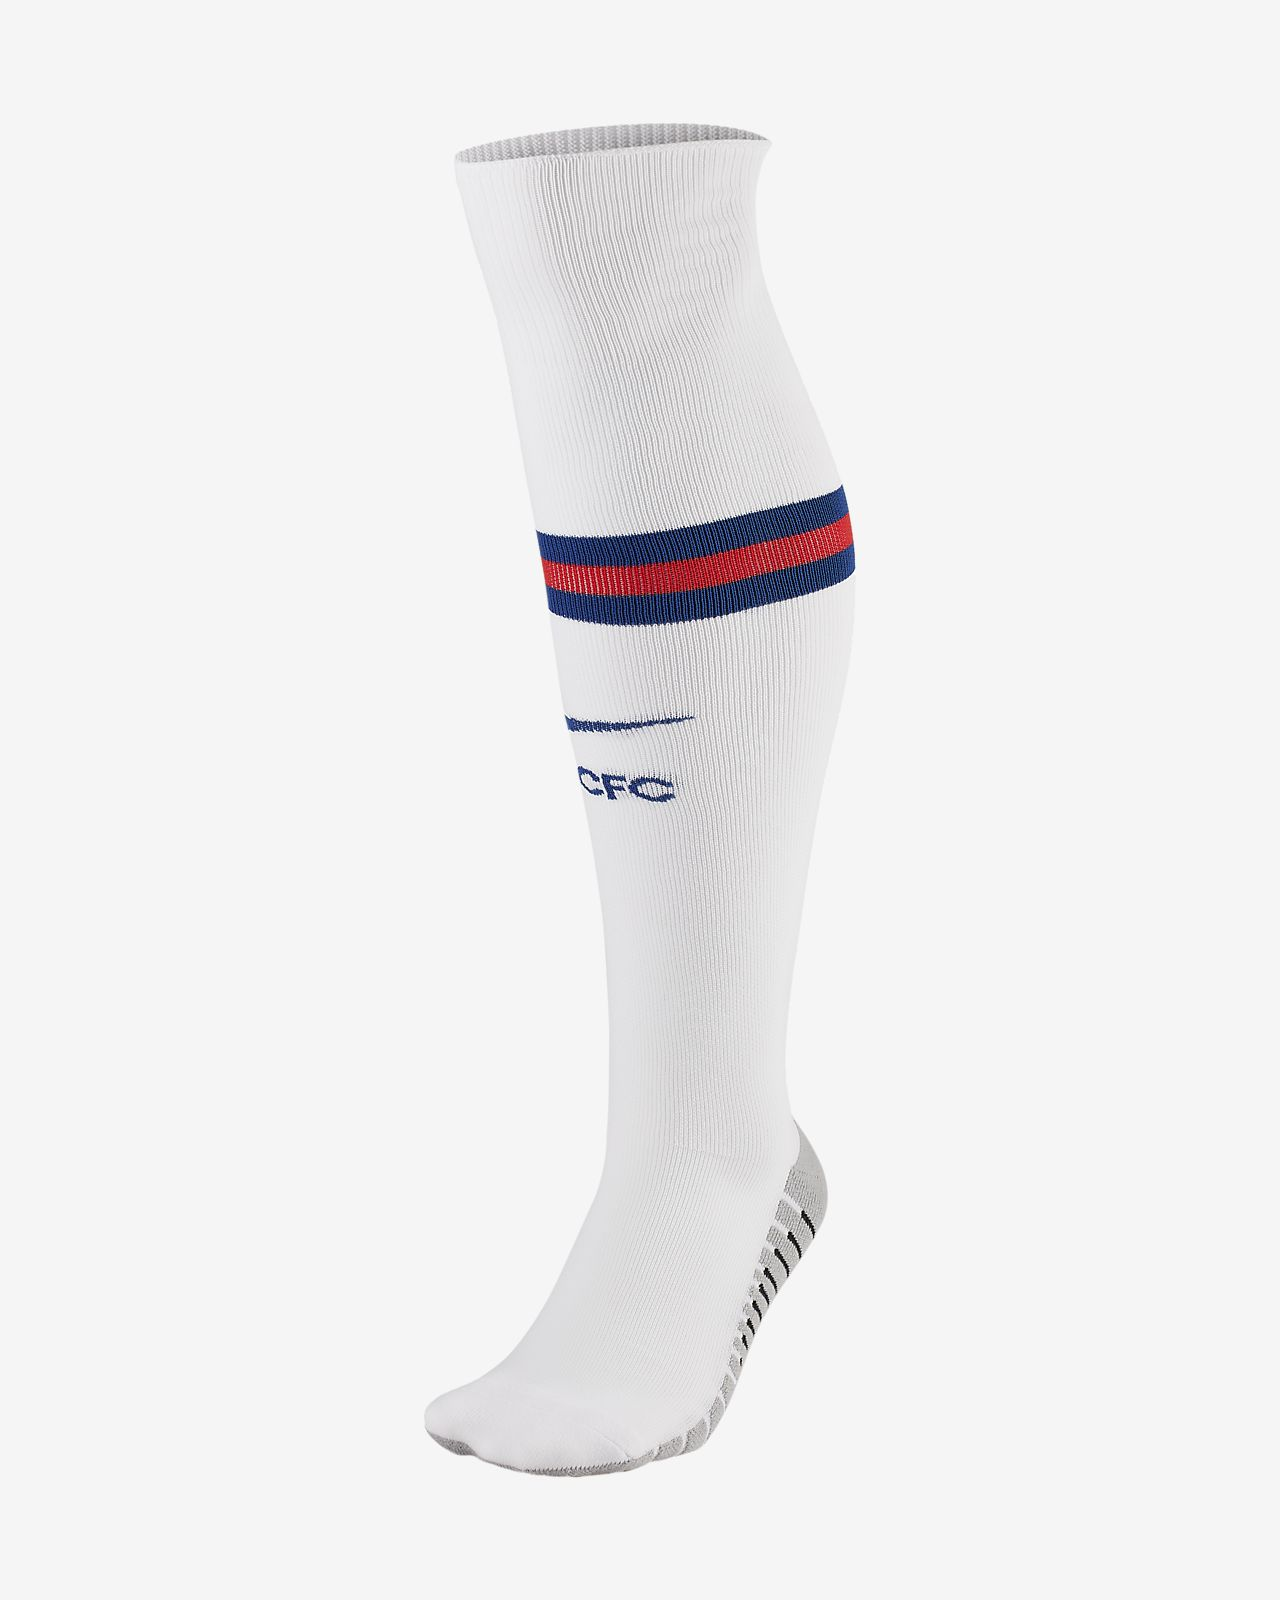 Chelsea FC 2019/20 Stadium Home/Away Over-the-Calf-Fußballsocken